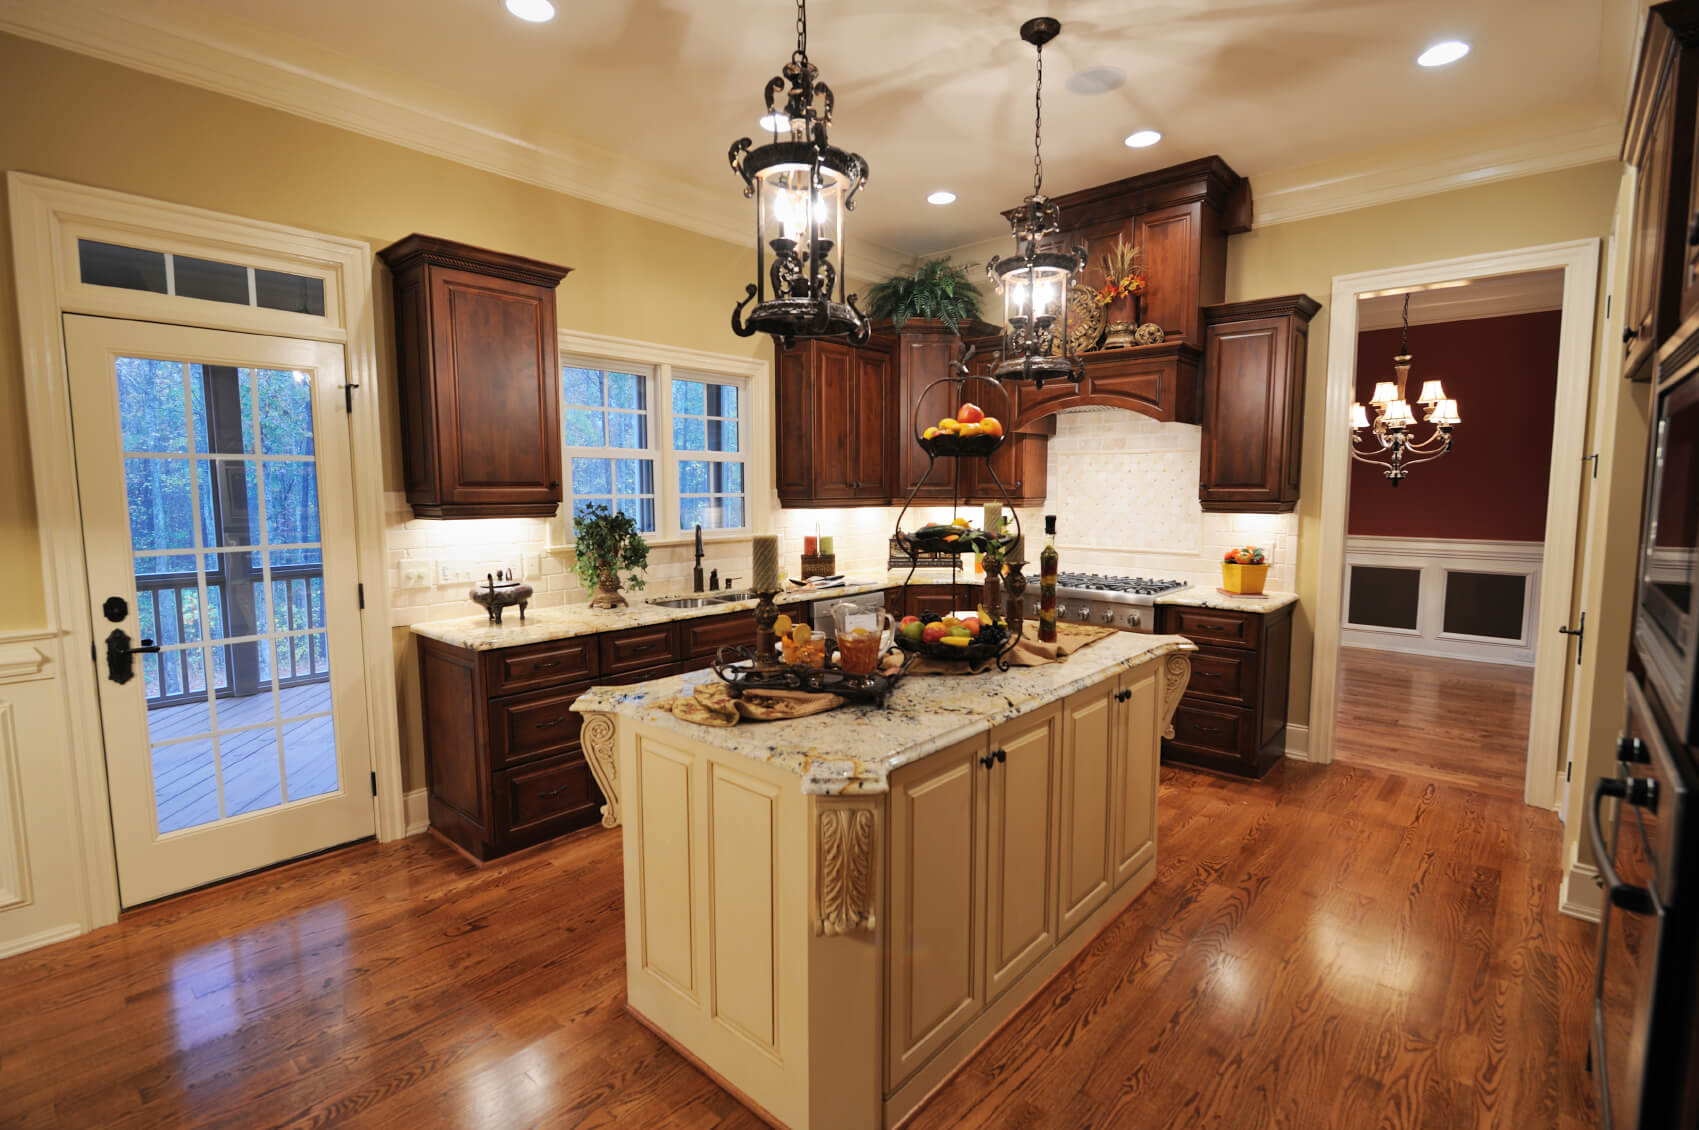 Light Wood Floors With Dark Kitchen Cabinets Wood Floors - Light wood floor kitchen